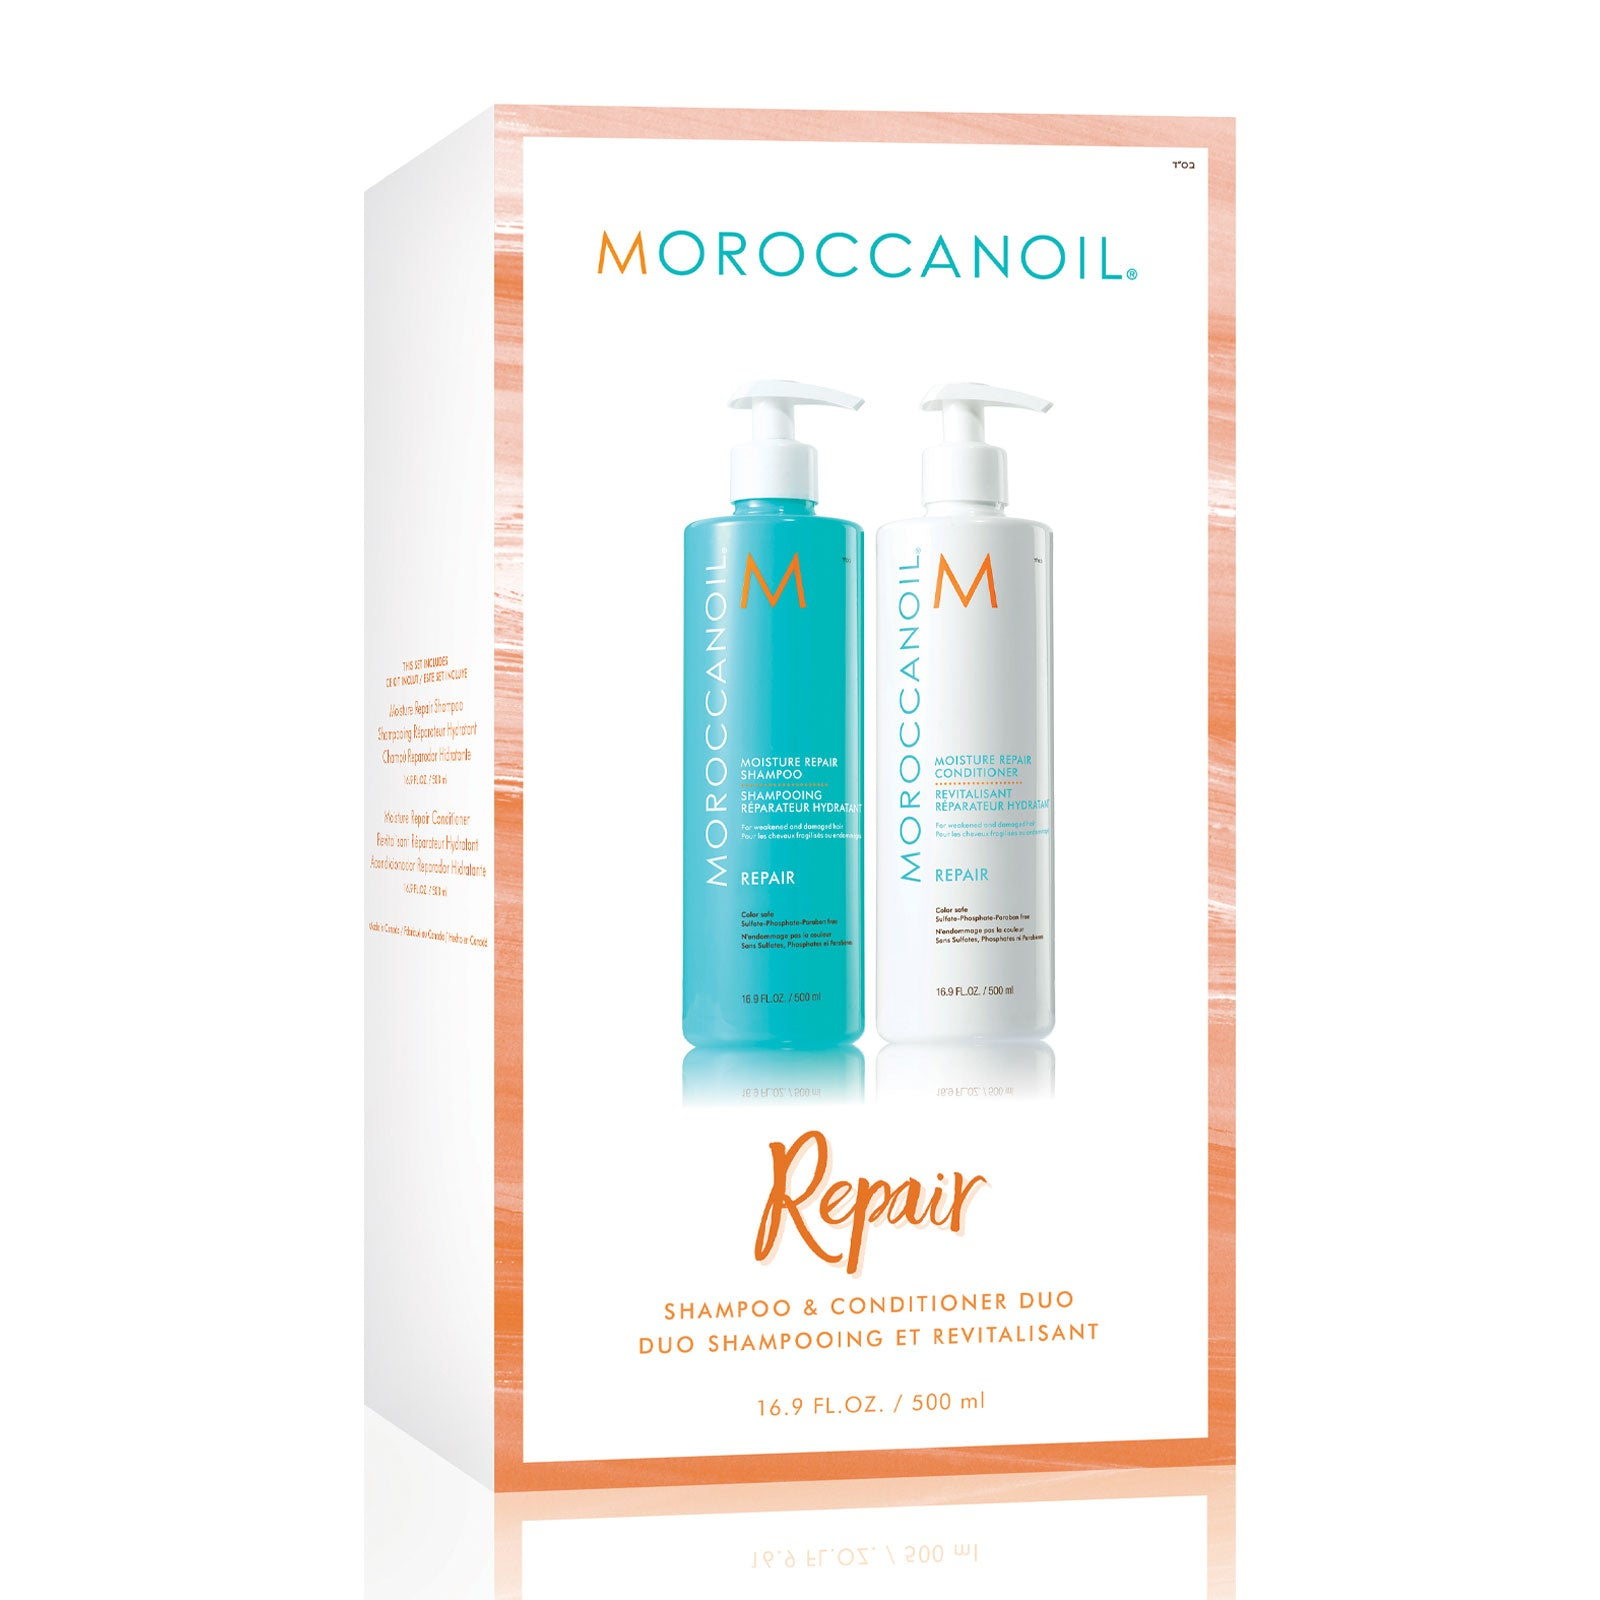 Moroccanoil Moisture Repair Shampoo & Conditioner Duo 500ml